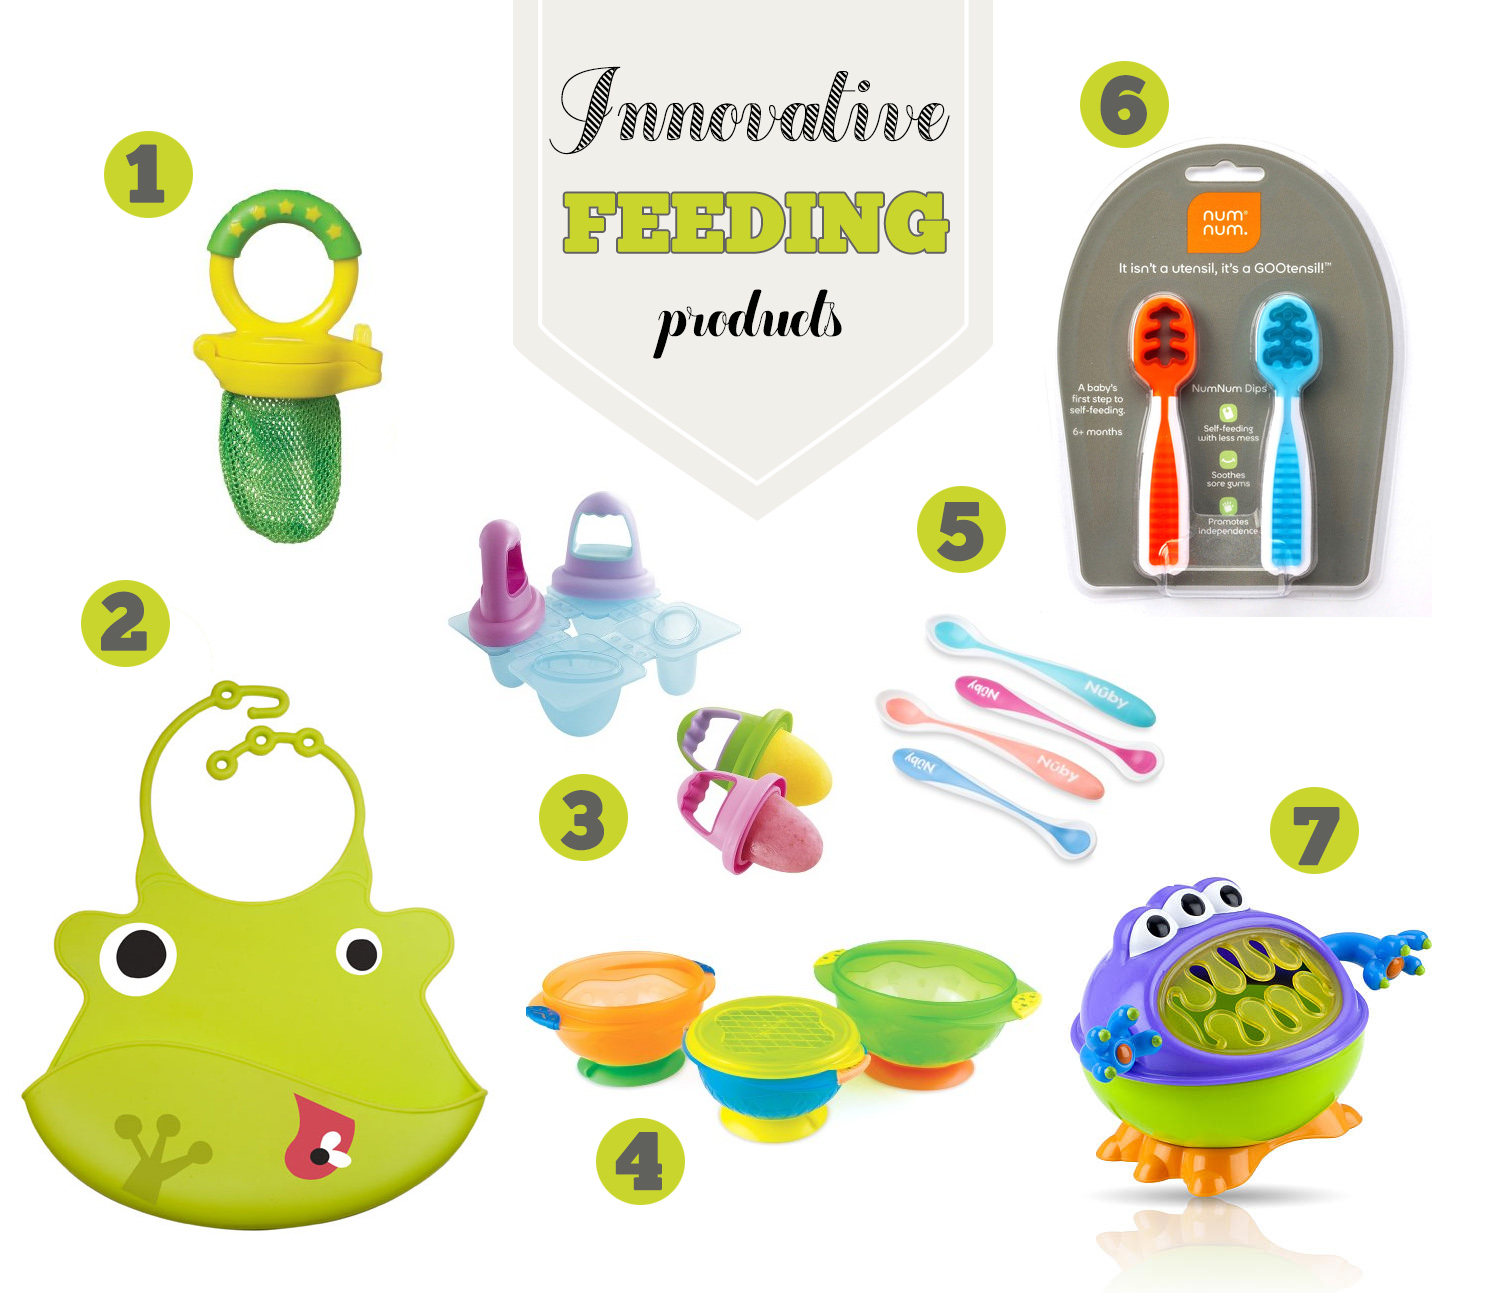 7 Innovative Baby Feeding Products The Best Ideas For Kids